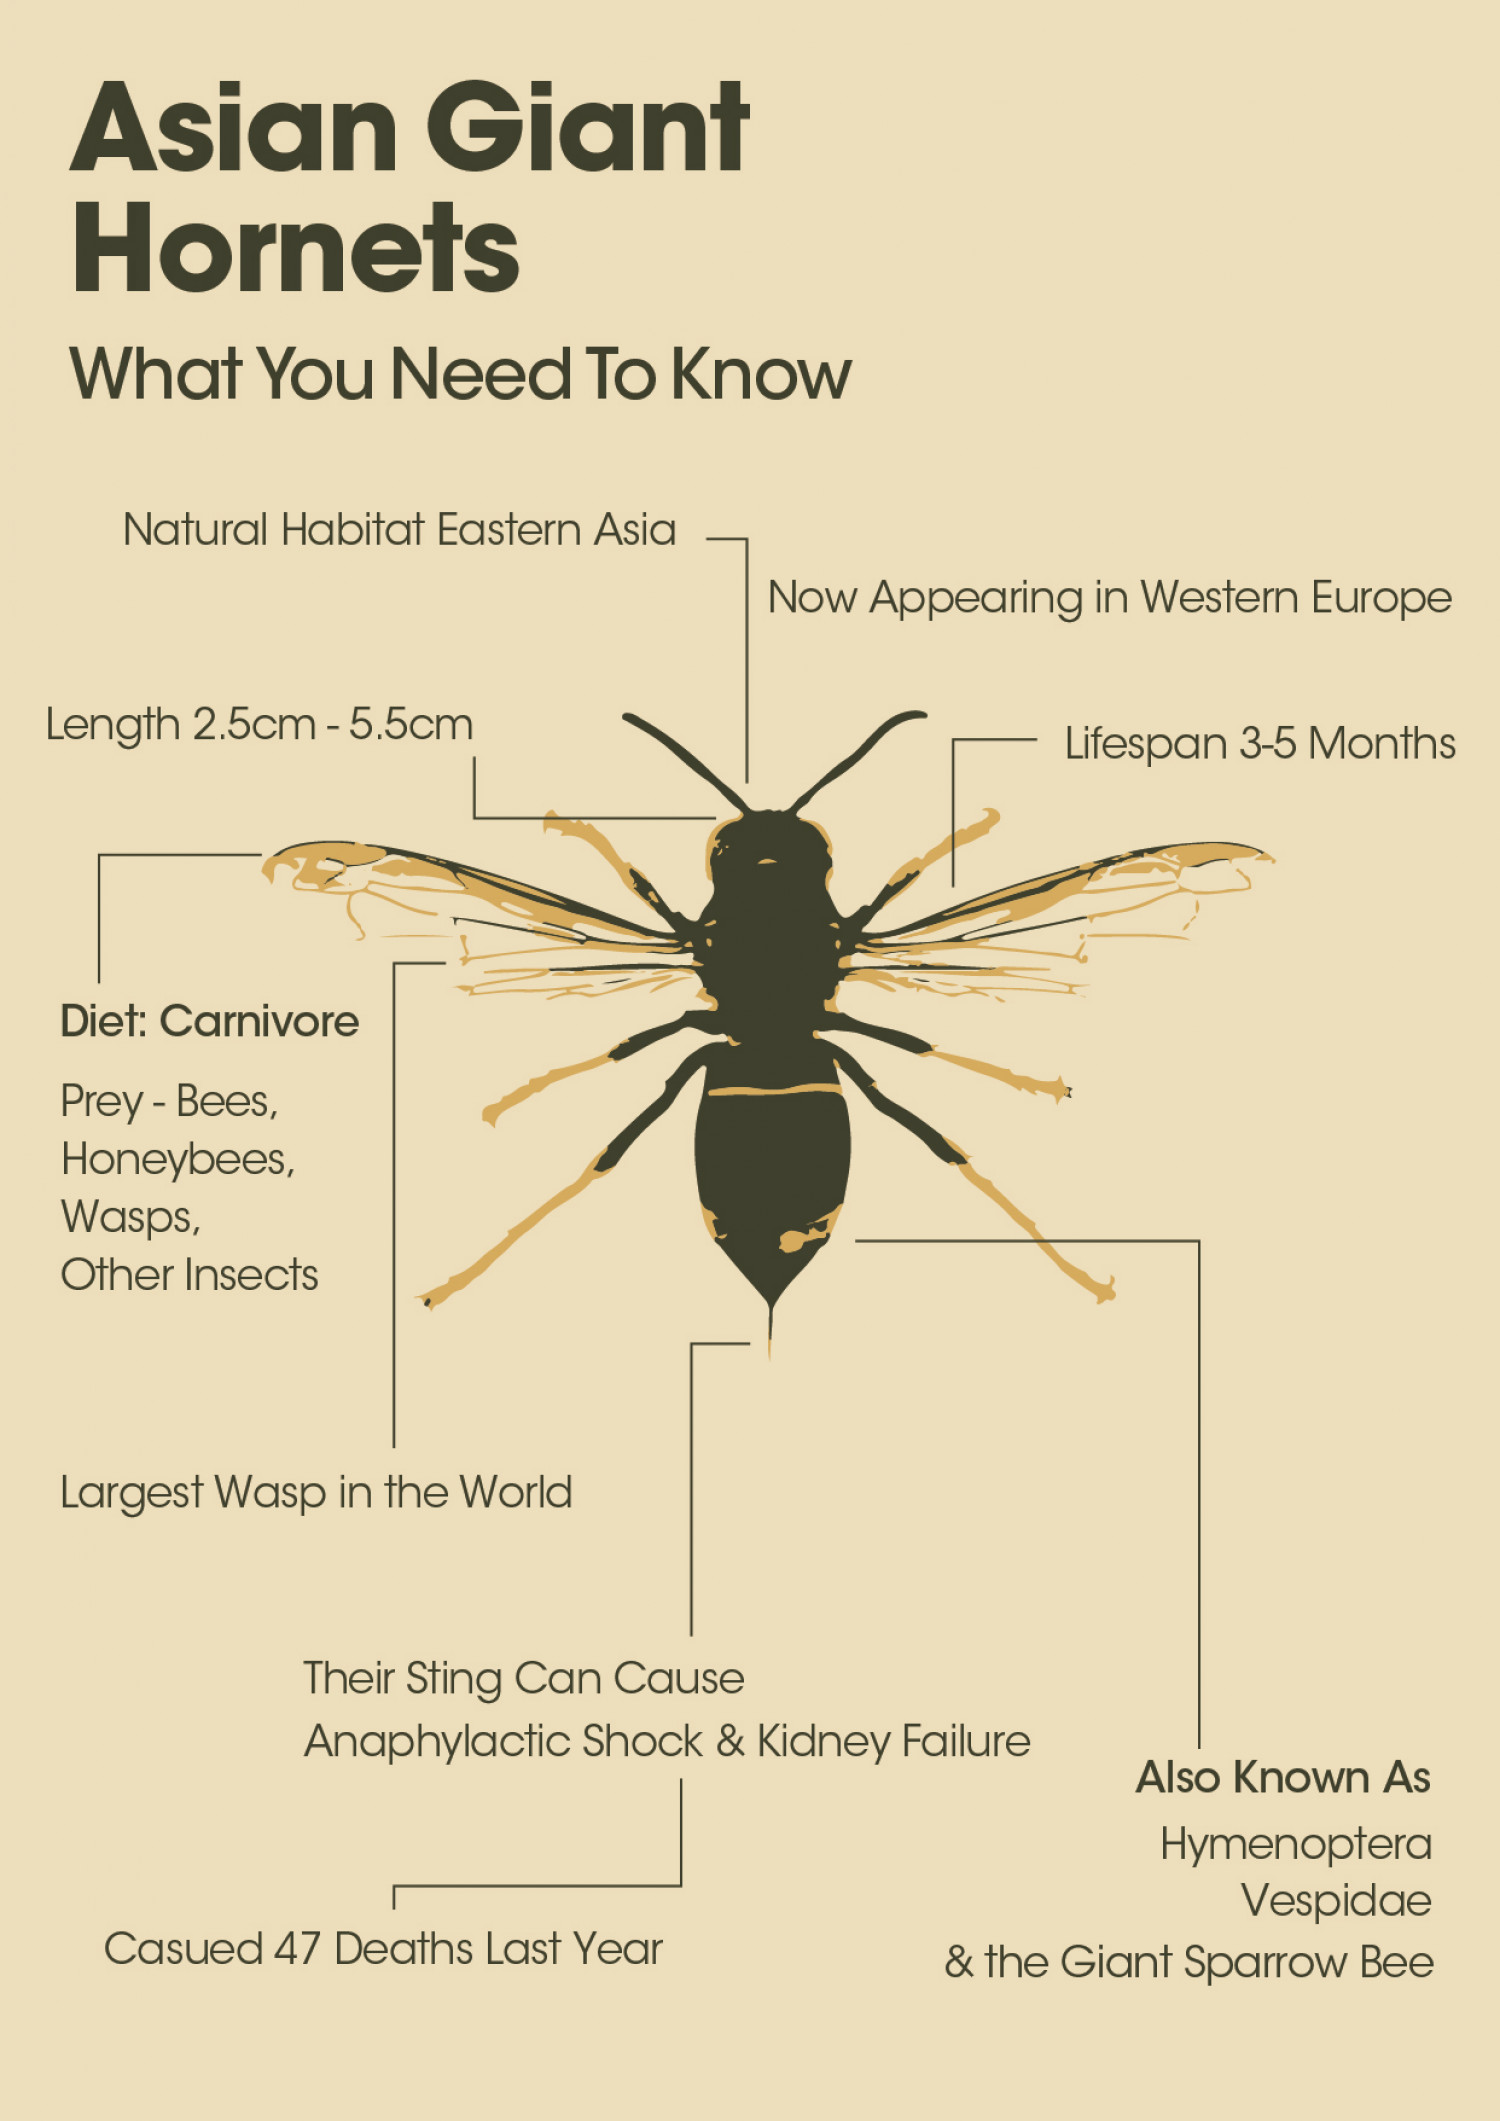 Asian Giant Hornets - What You Need To Know Infographic